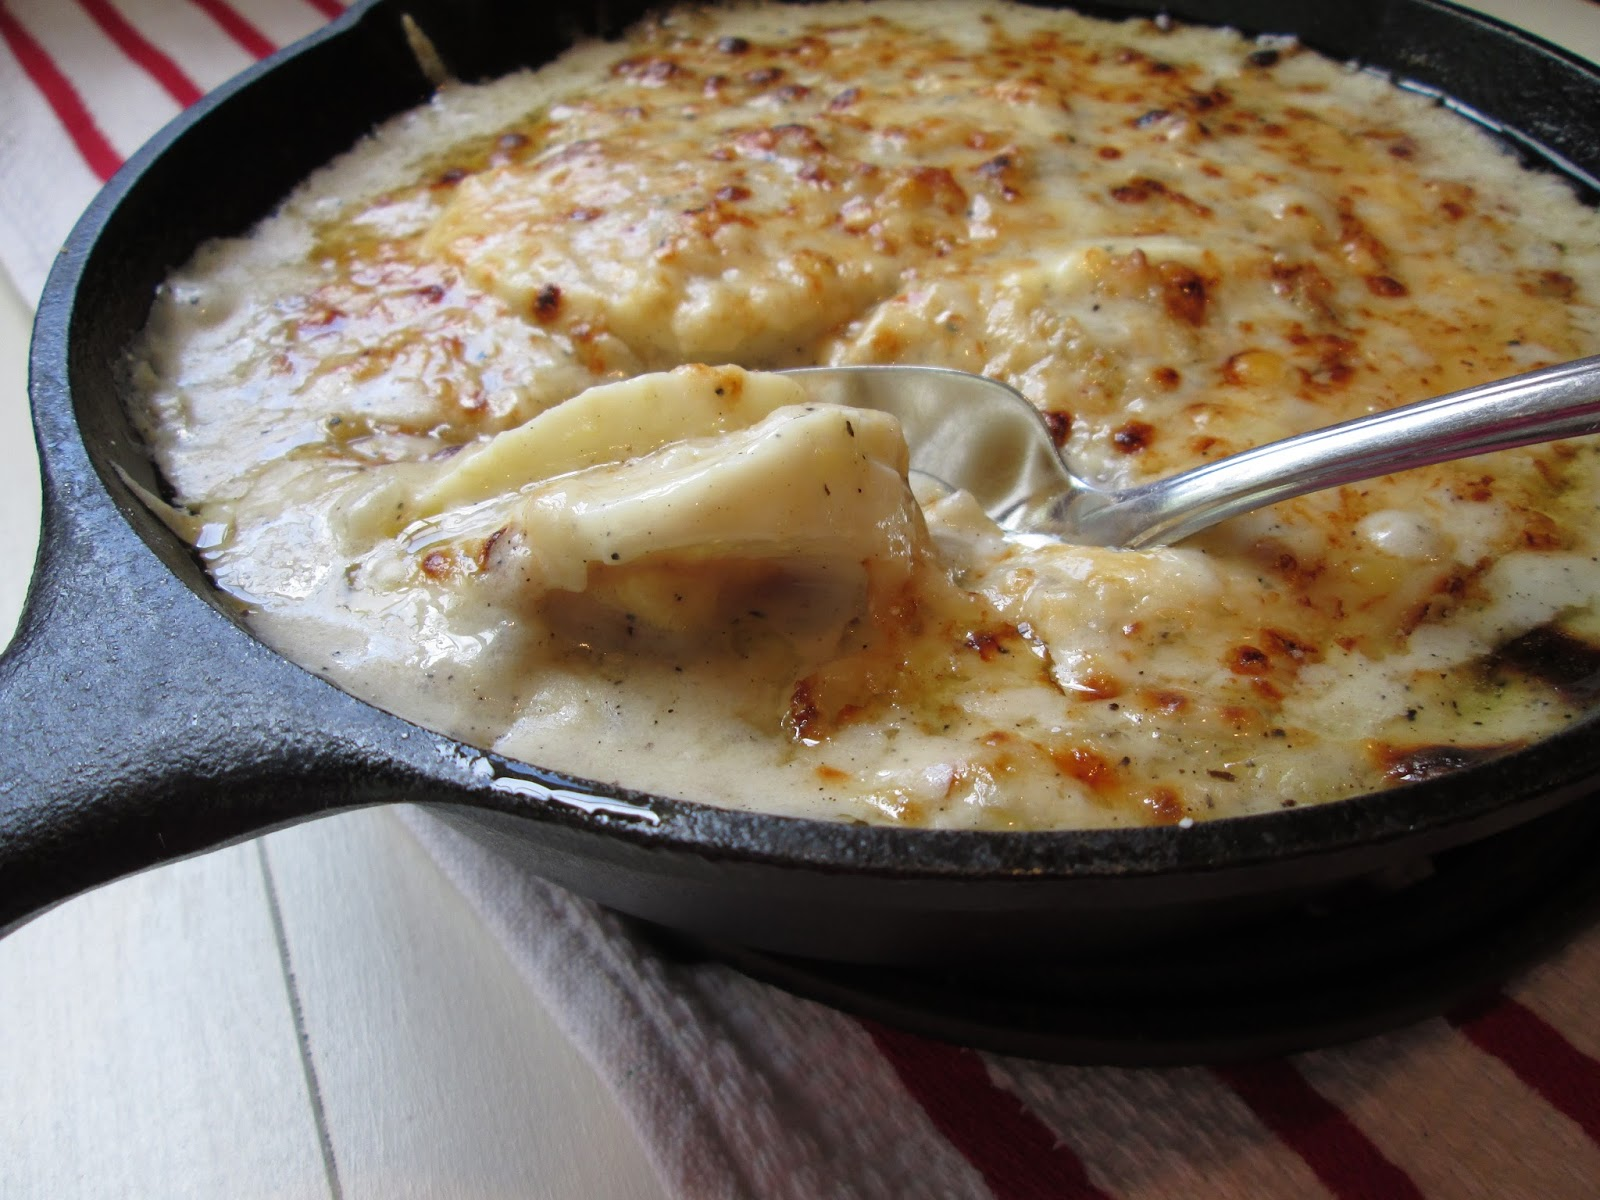 ... Pot: Jacques Pépin's Egg and Onion Gratin {One Of My All-Time Faves